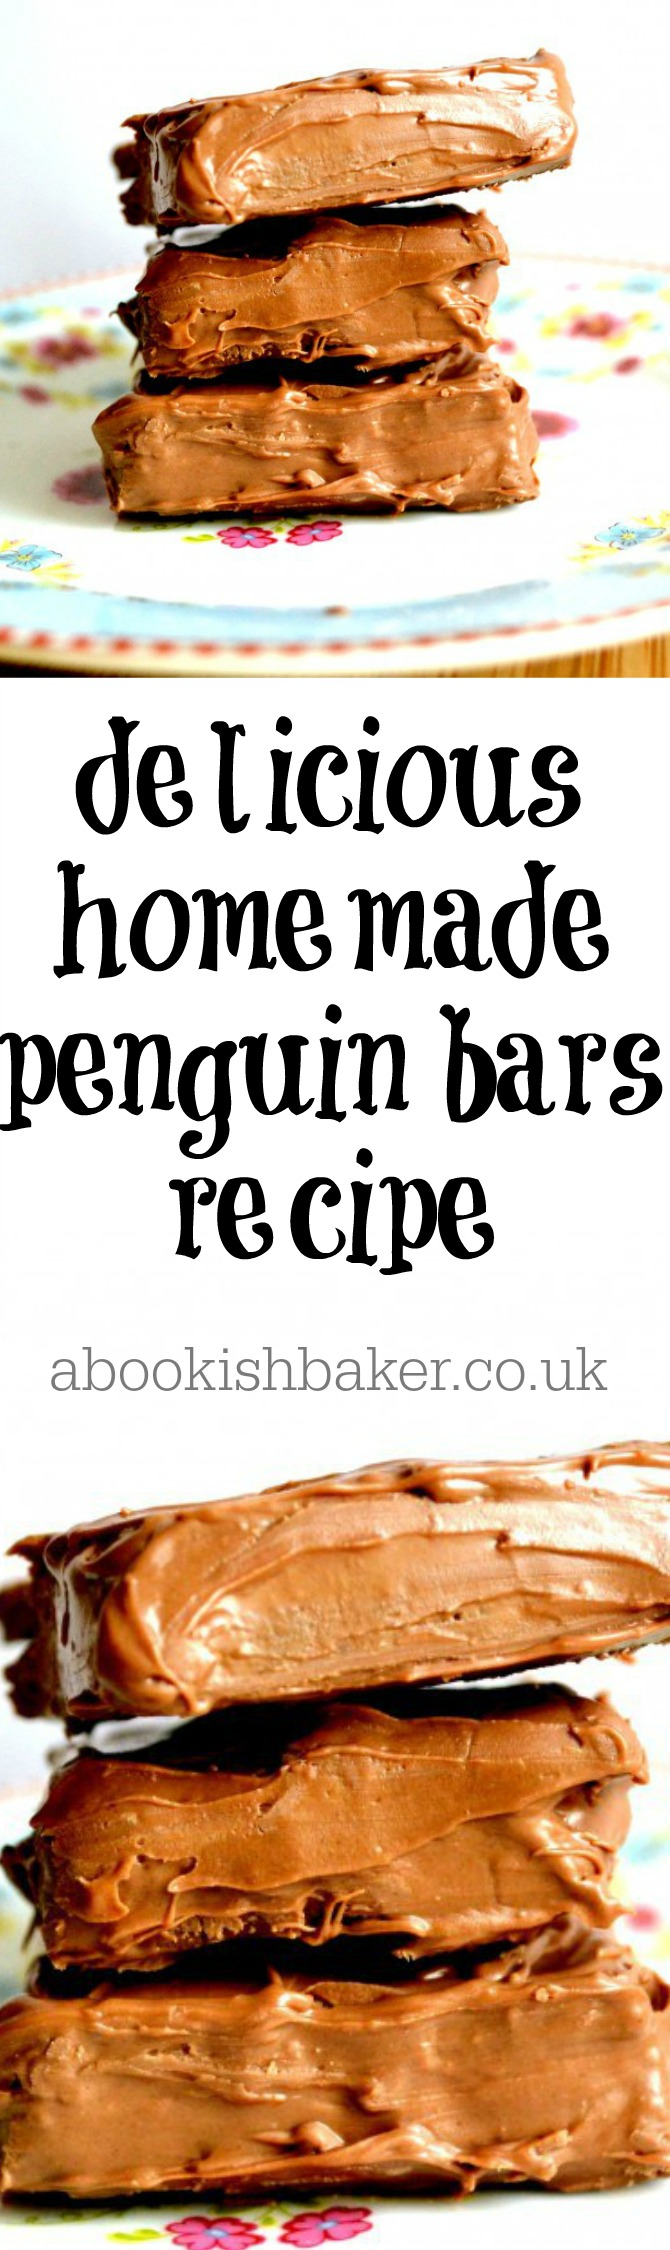 homemade penguin bar recipe - extremely delicious. Great for bake sales, coffee mornings, tea time treats and dessert. http://abookishbaker.co.uk/